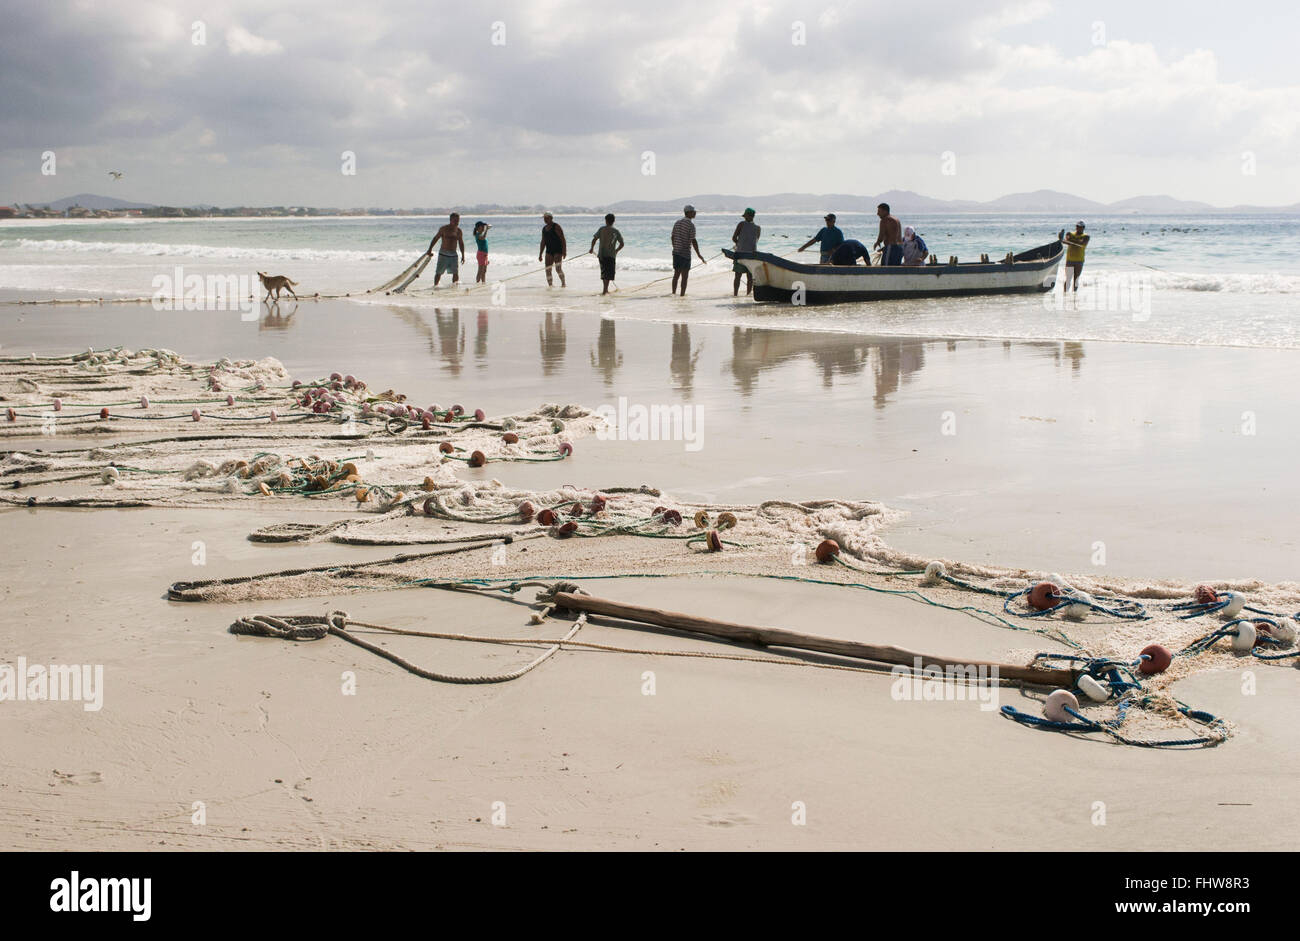 Network of artisanal fisheries and fishermen in Pontal - Stock Image